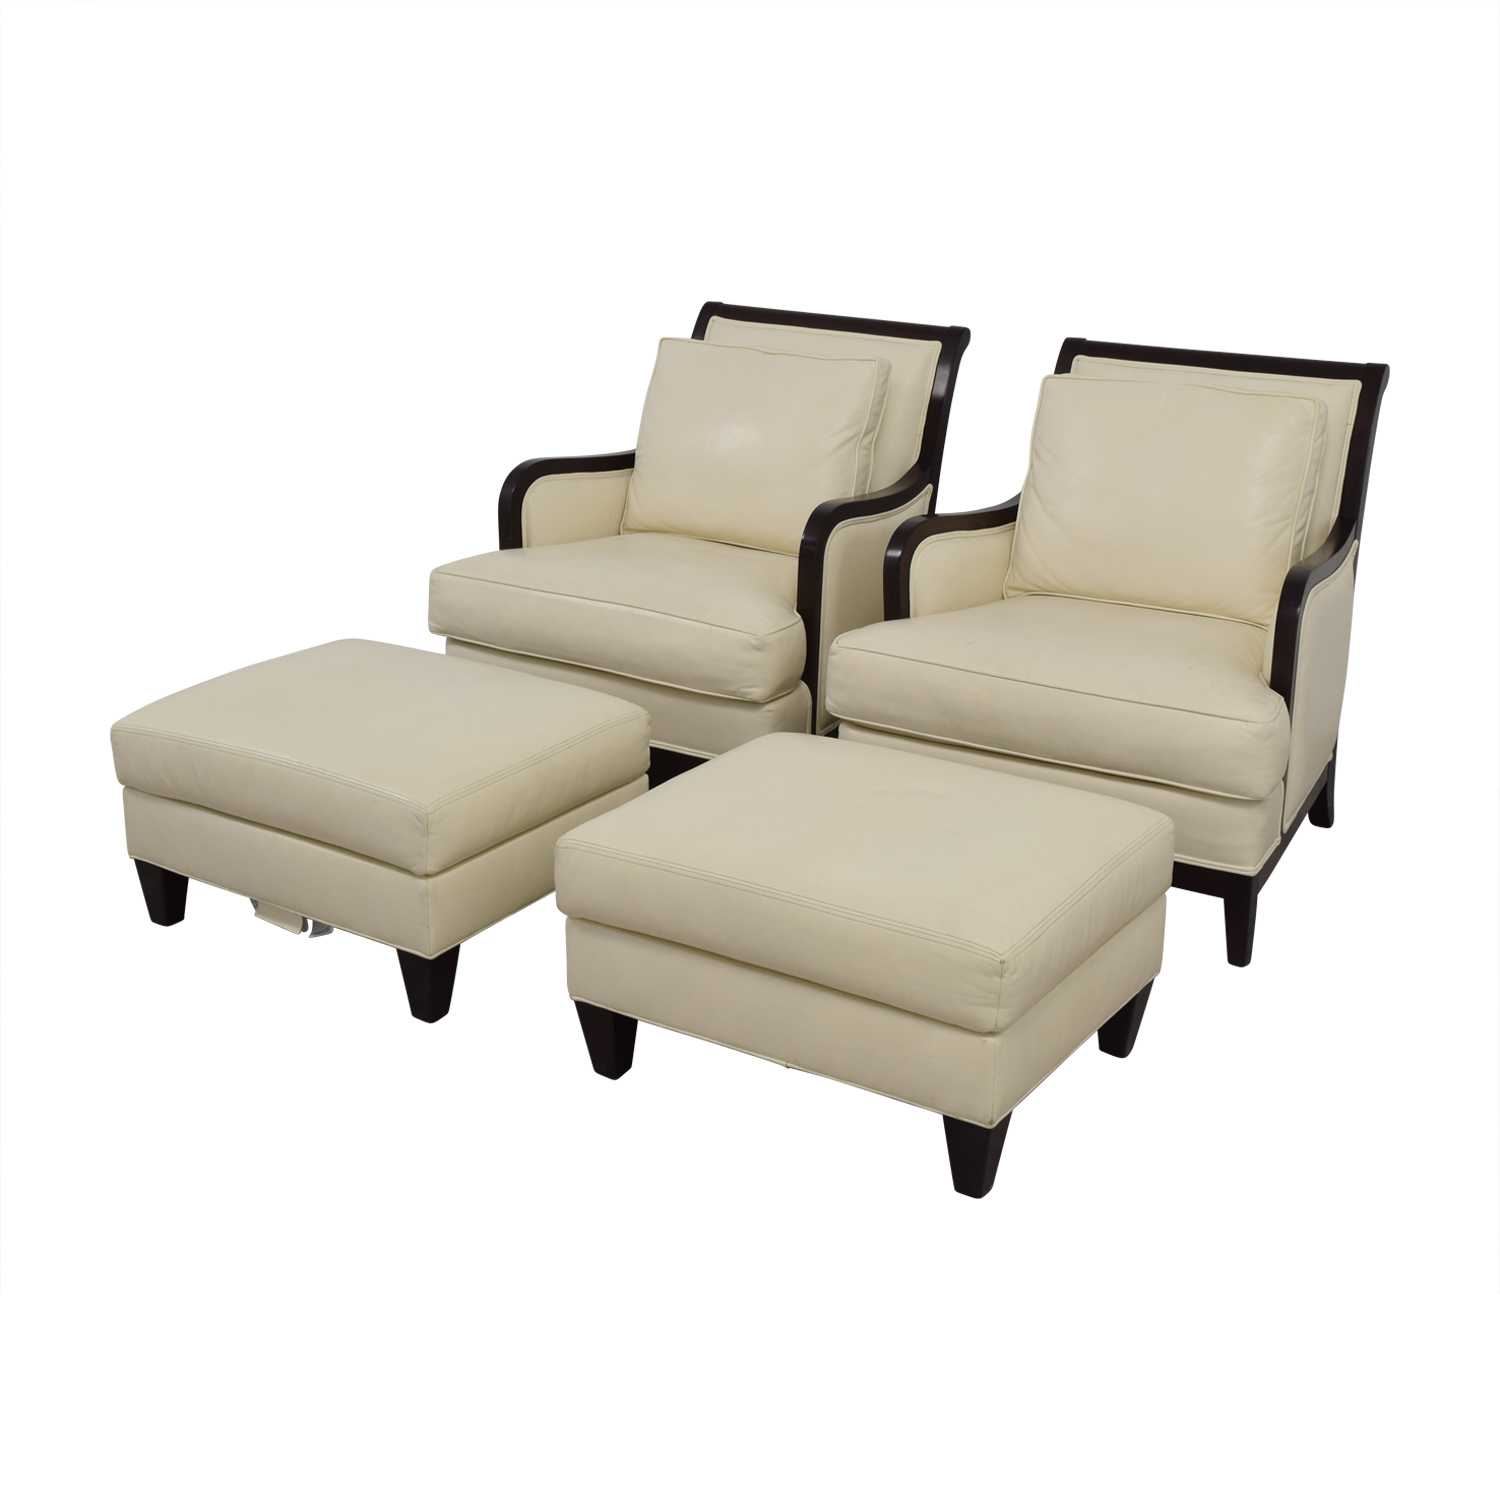 Ethan Allen Palma Sofa reversadermcreamcom : second hand ethan allen palma ivory leather chairs with ottomans from reversadermcream.com size 1500 x 1500 jpeg 274kB